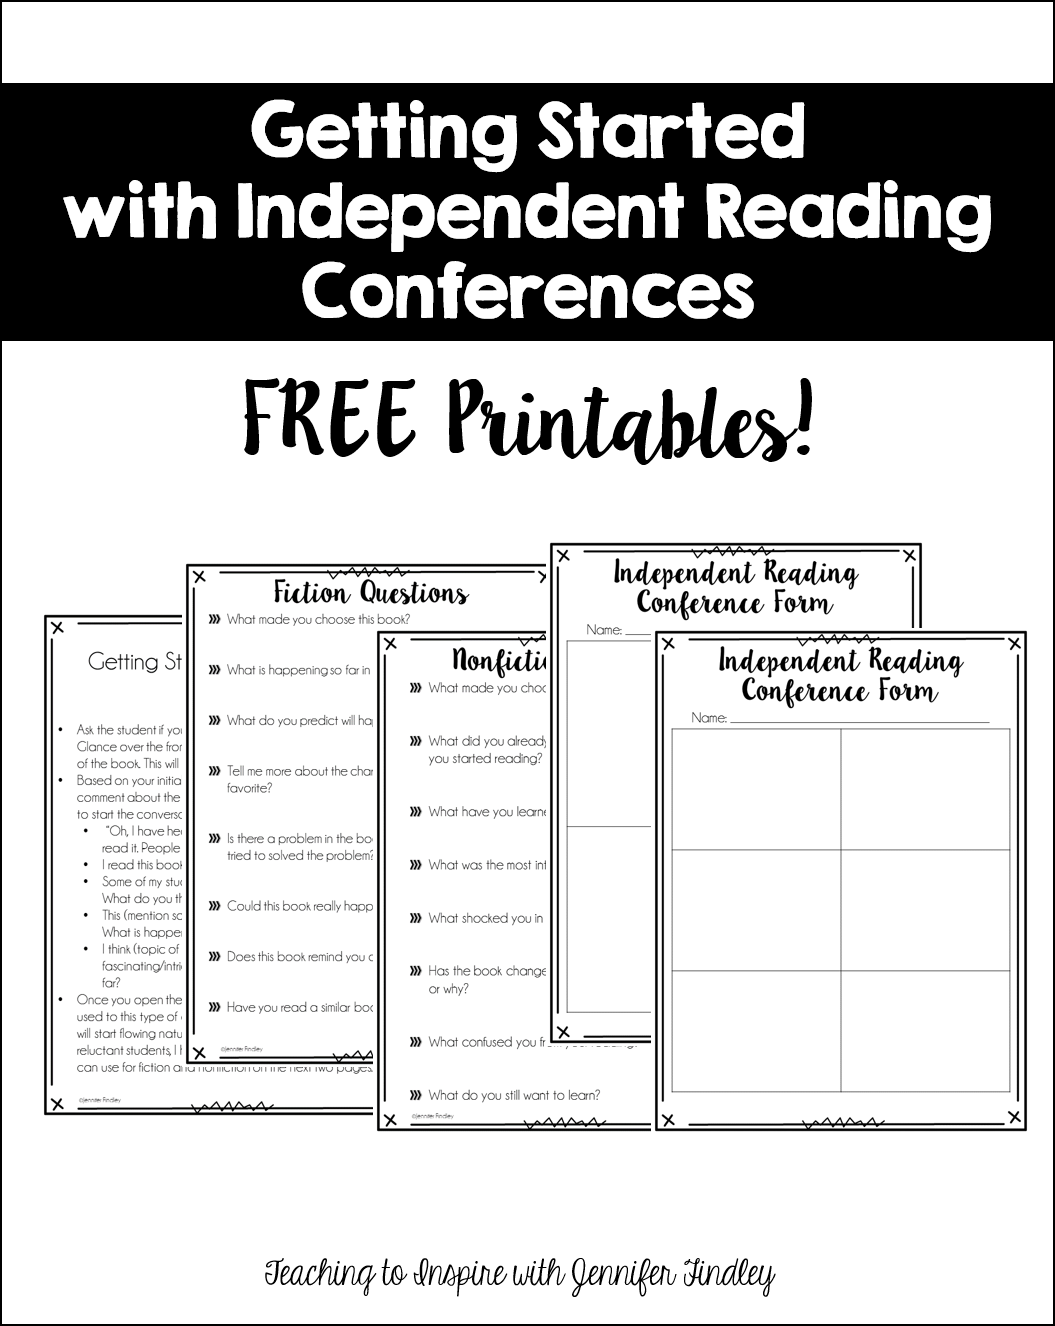 Getting Started with Independent Reading Conferences Free Printables